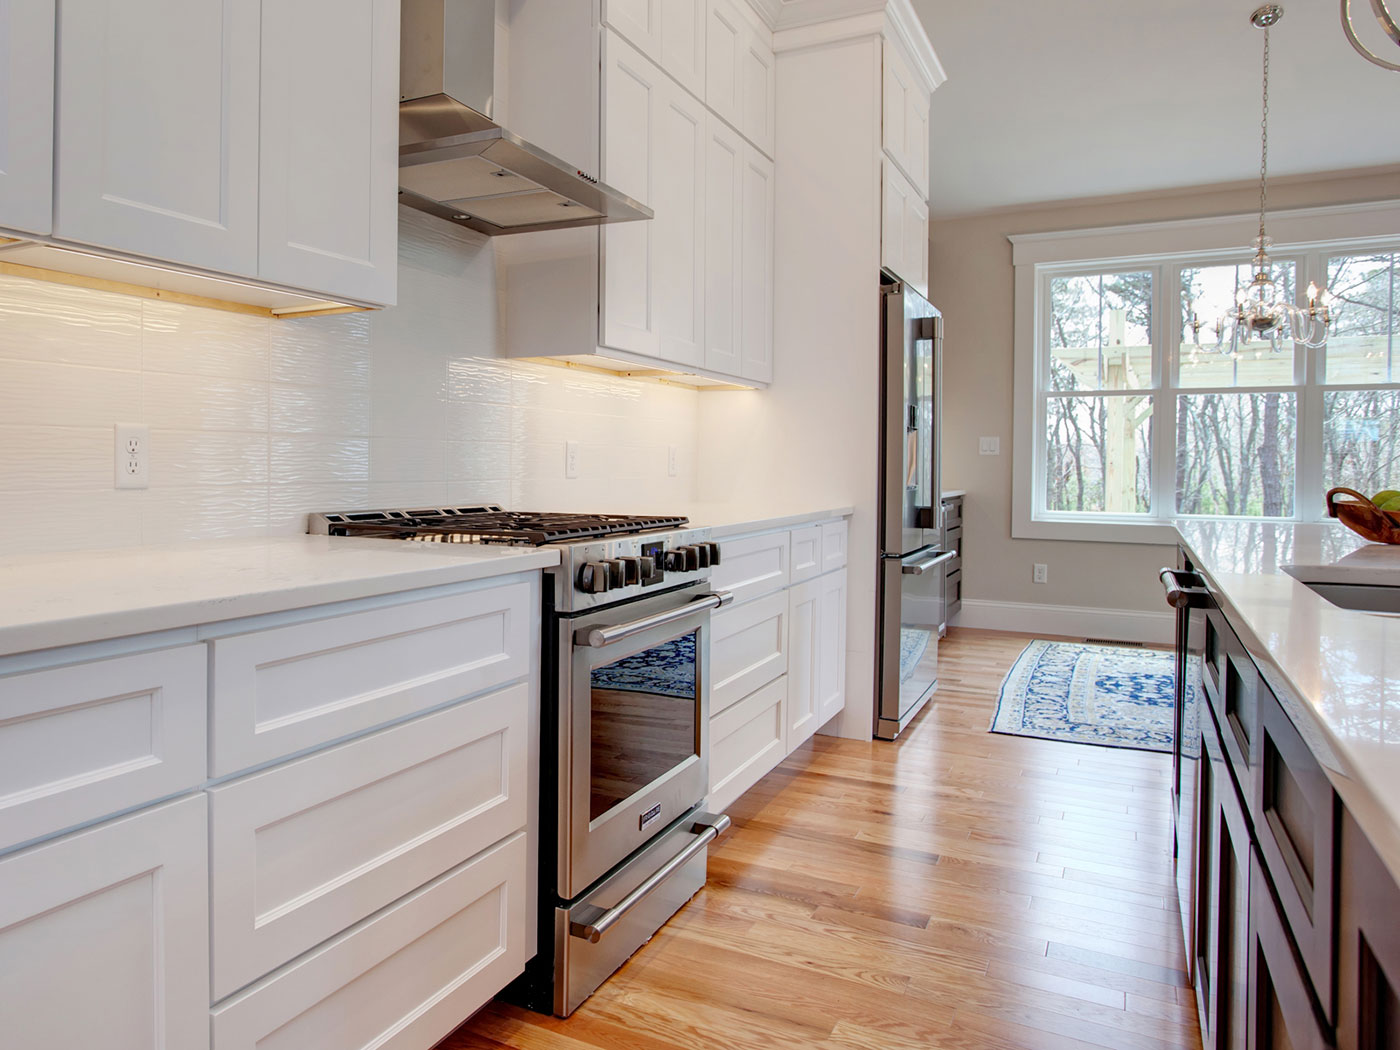 Standard Kitchen Cabinets White - Craftworks Custom Cabinetry - Rochester, NY